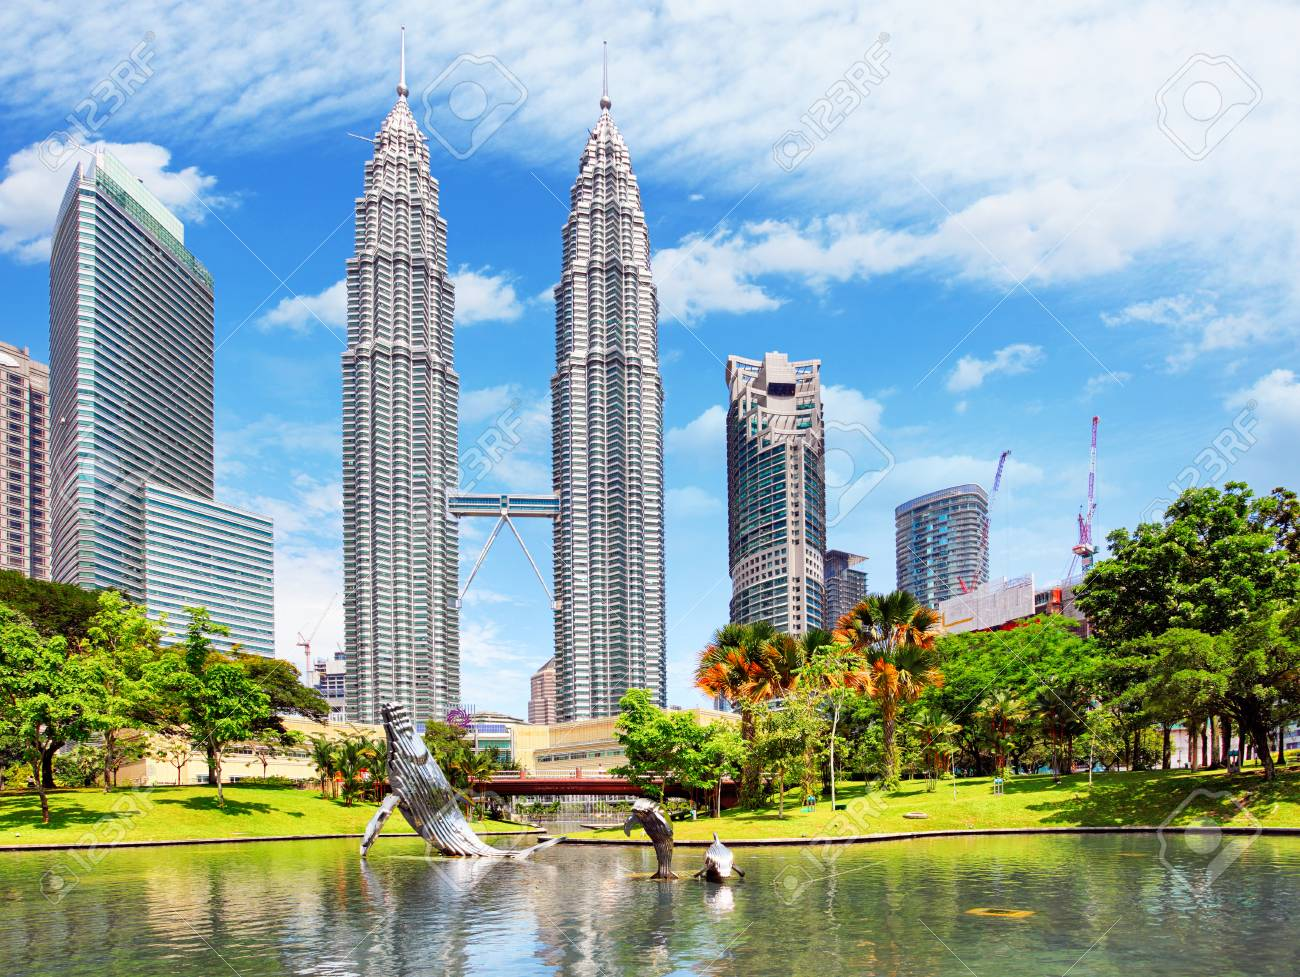 KUALA LUMPUR, MALAYSIA - Ferbruary 5: Petronas Towers on February 5, 2016 in Kuala Lumpur, Malaysia.Petronas Towers is the tallest buildings in the world from 1998 to 2004 - 59200239